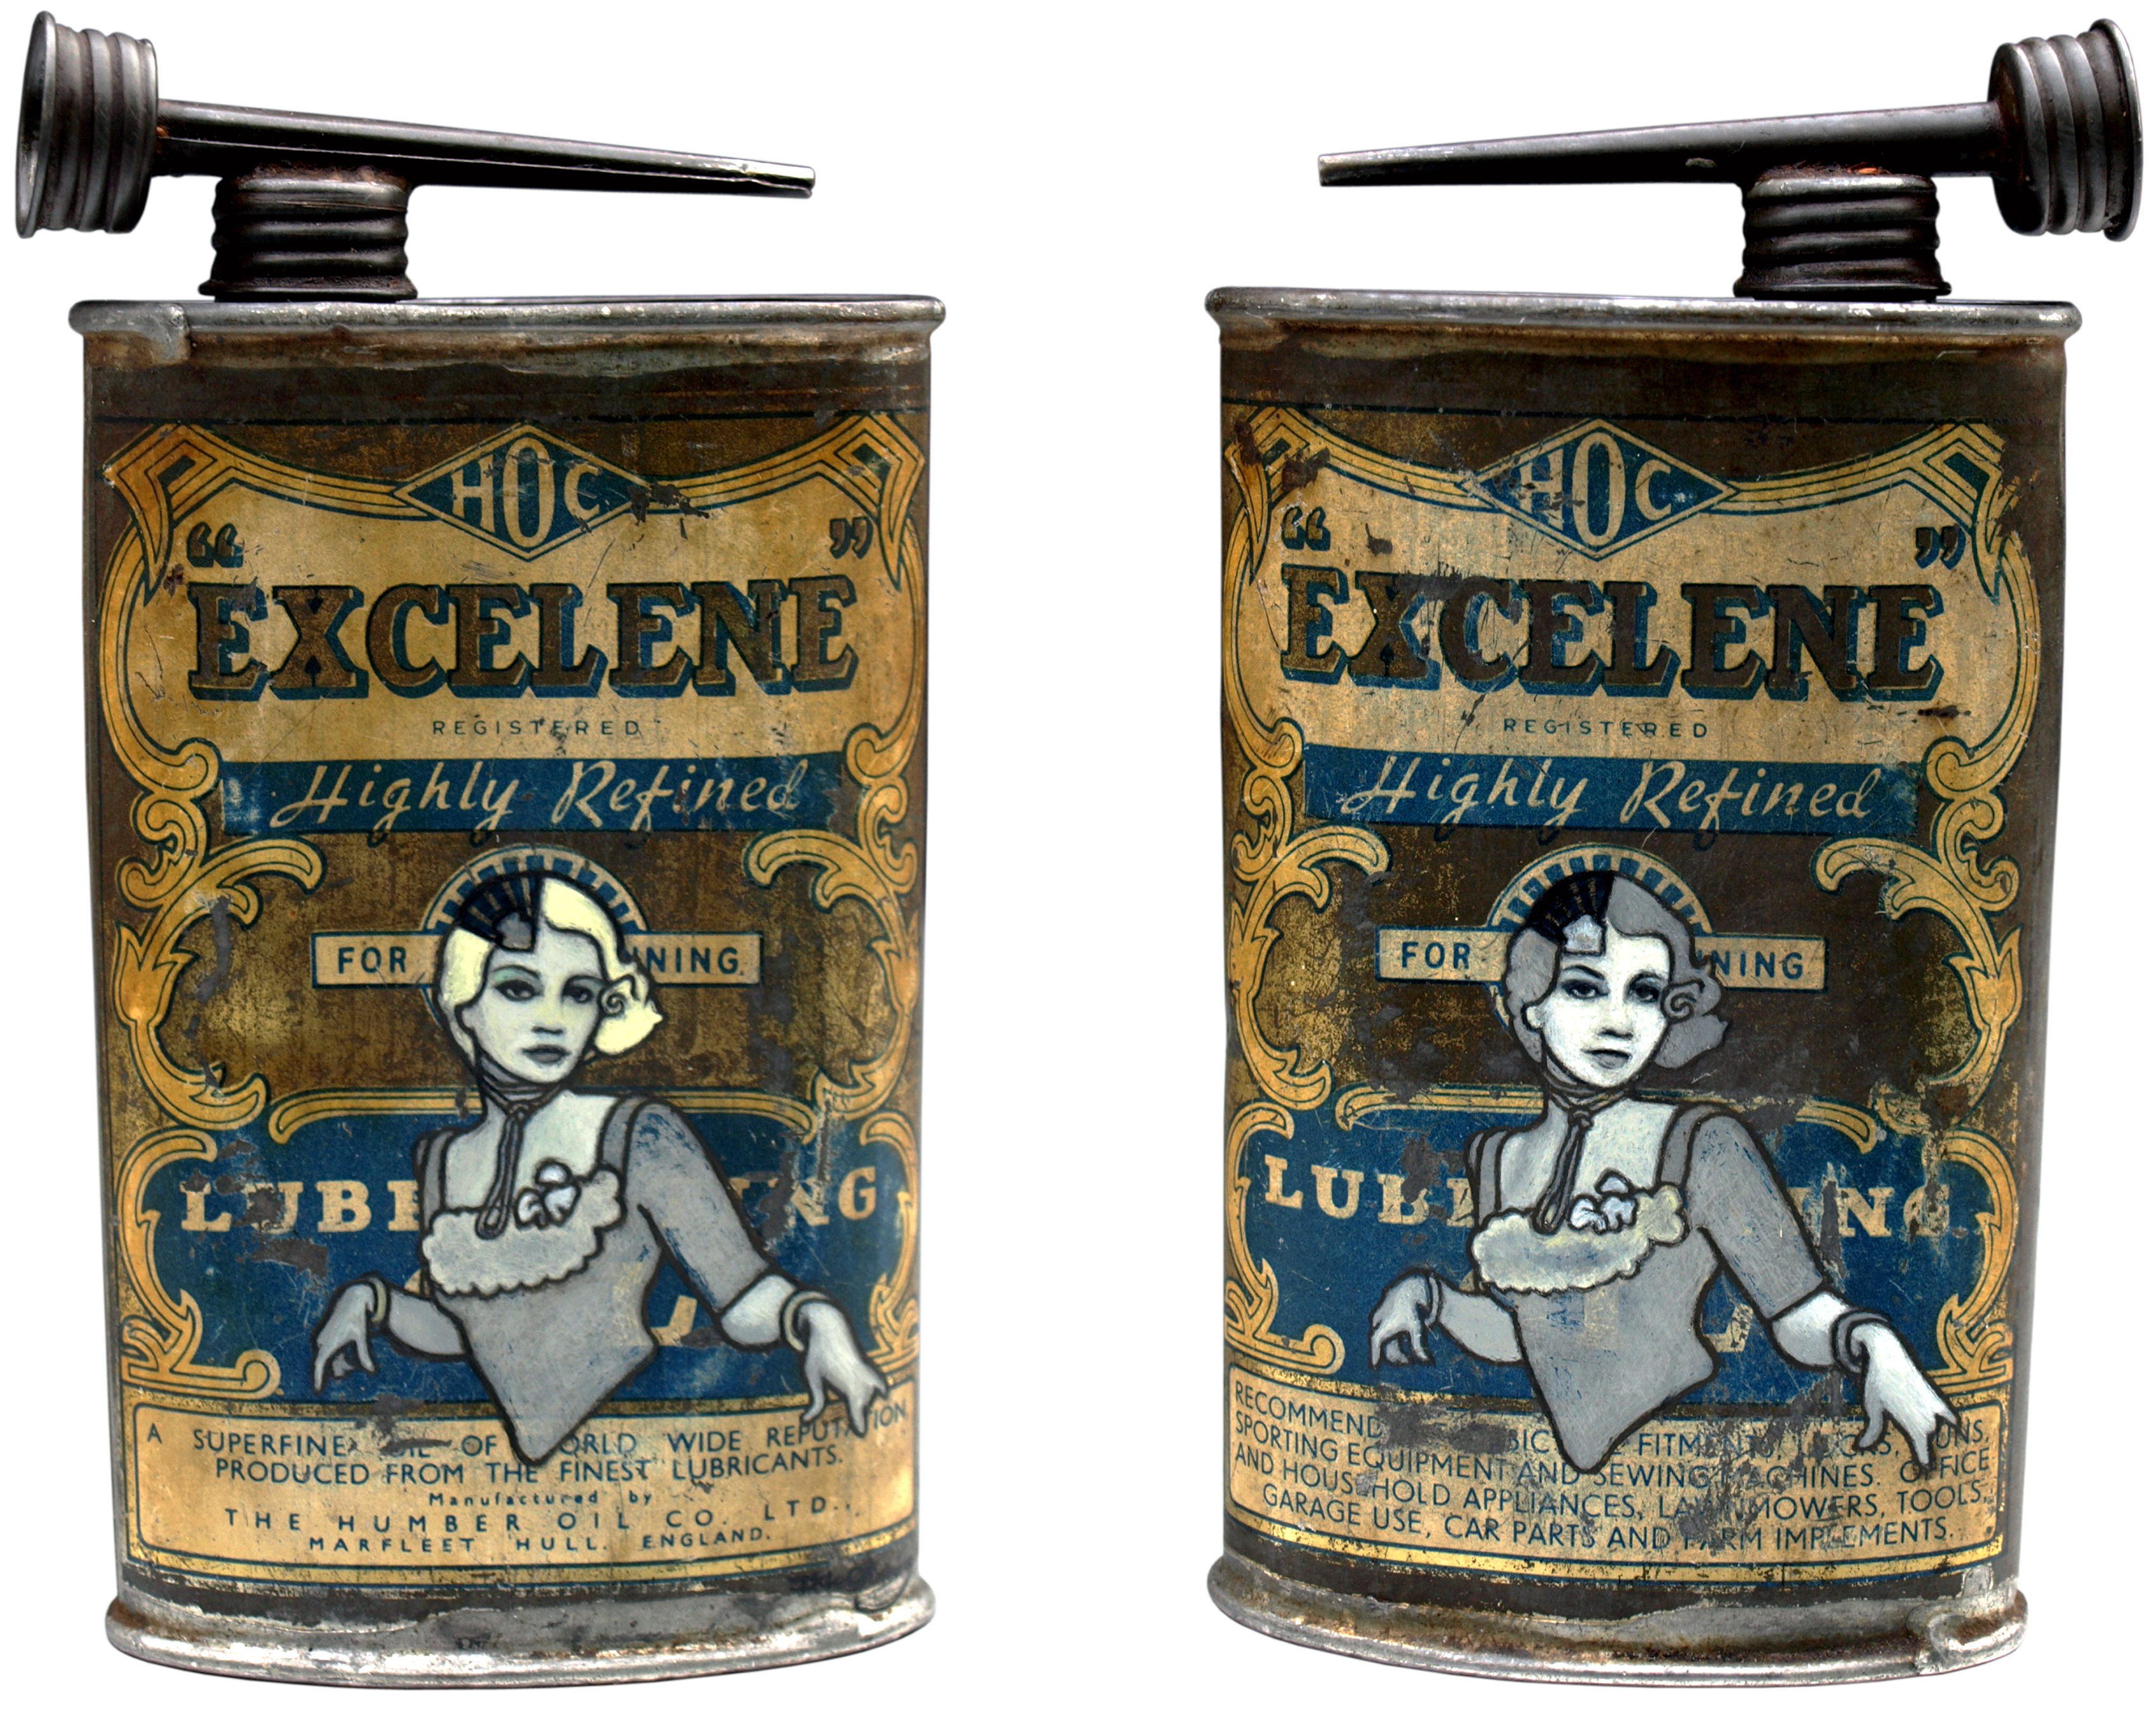 Excelene (2008) oil and eggshell on tin can by kiwi painter Dave Le Fleming